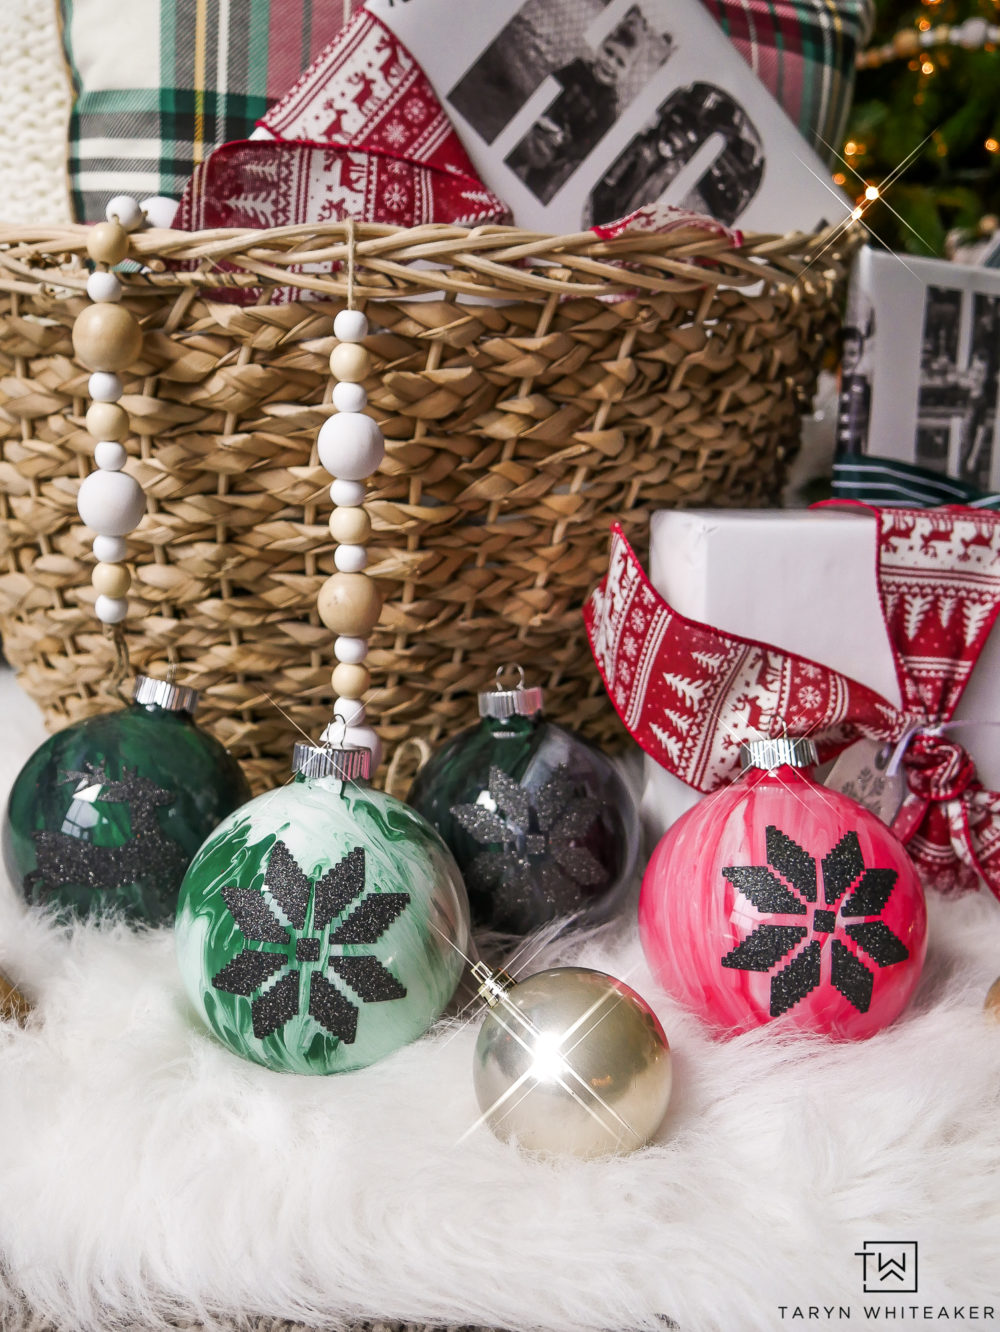 These are such cute handmade ornaments! I love the DIY Marbled Ornament look paired with the modern black Christmas designs on top! Great project for your Cricut!